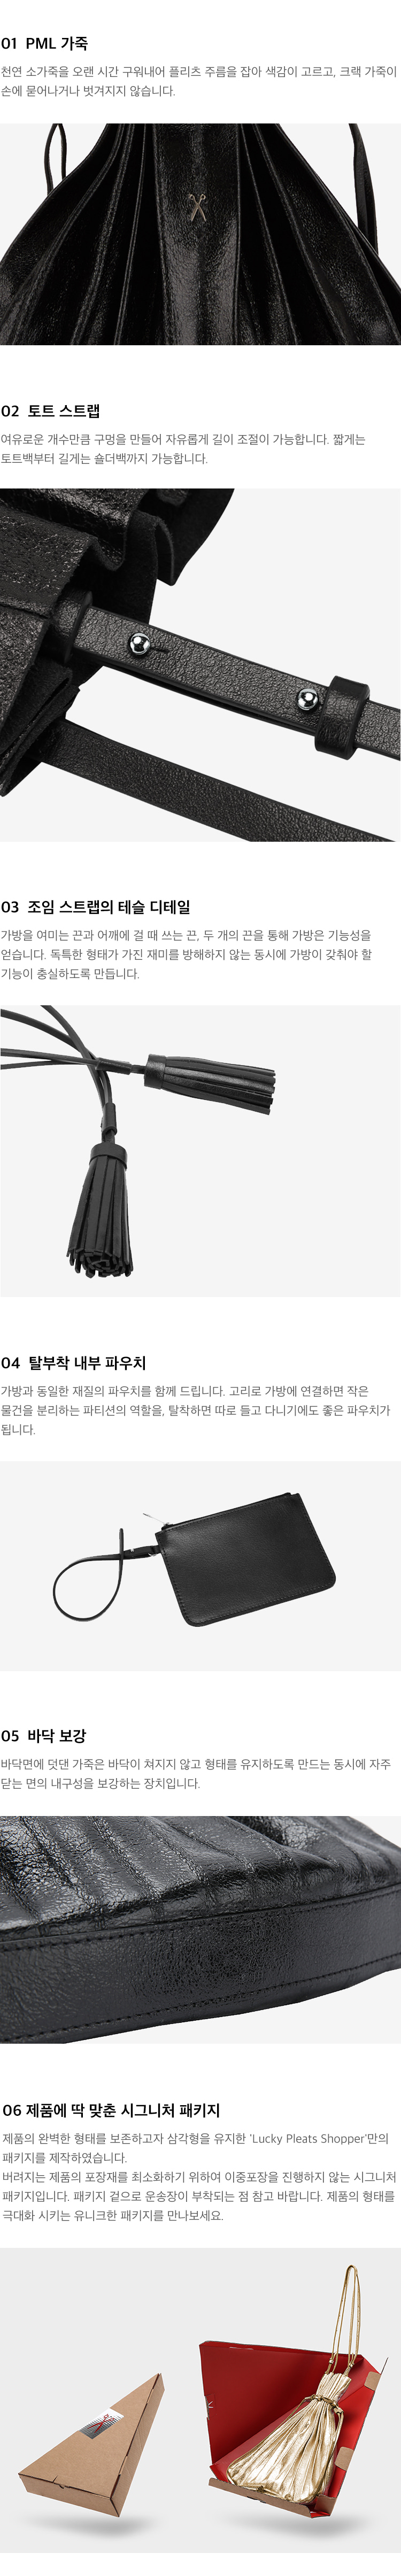 조셉앤스테이시(JOSEPH&STACEY) Lucky Pleats Shopper Cracked Black